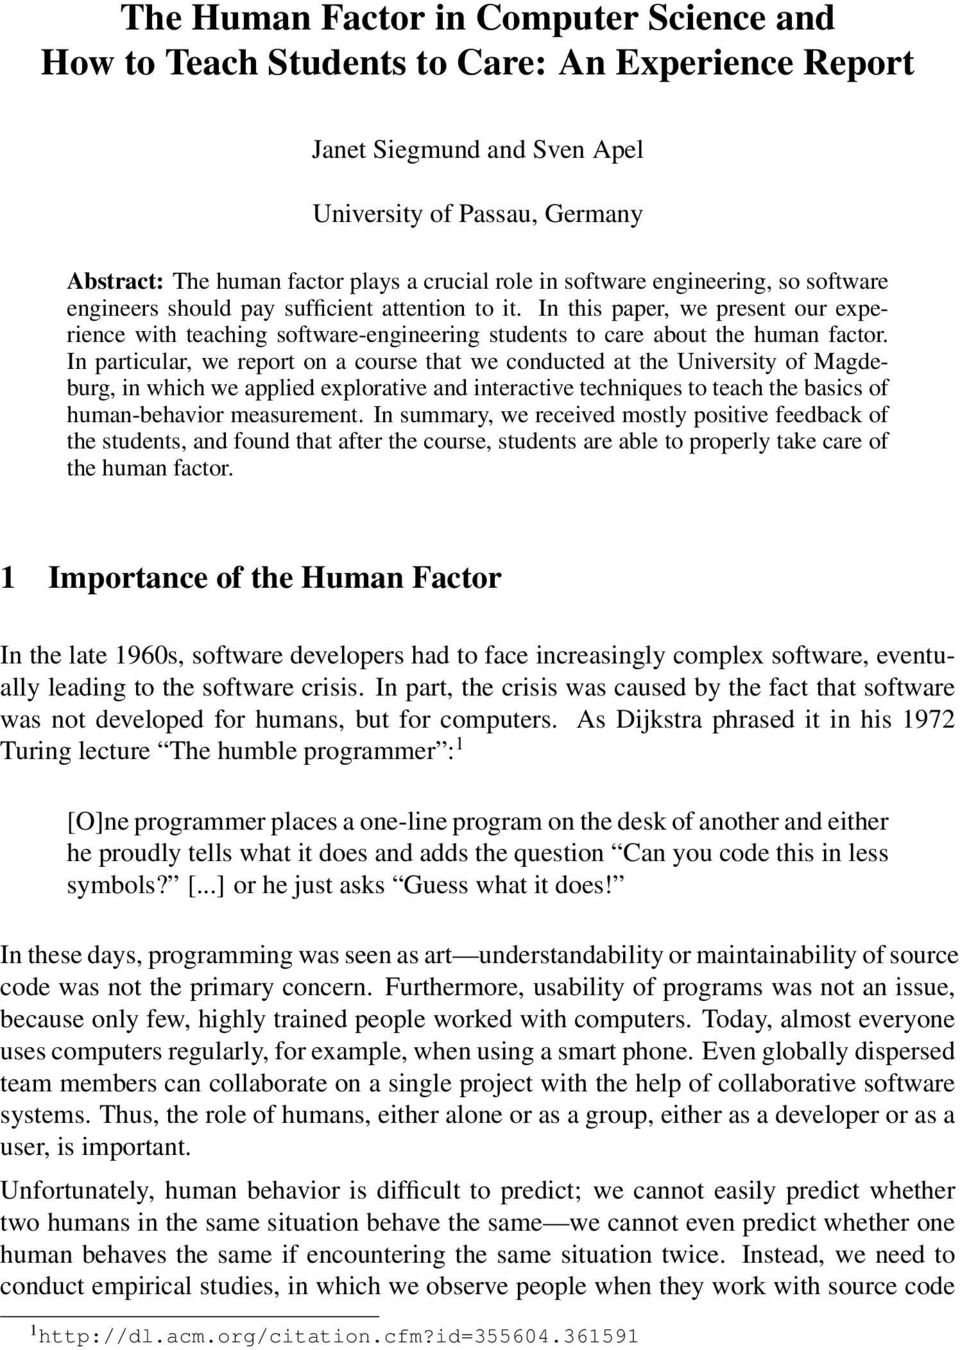 In this paper, we present our experience with teaching software-engineering students to care about the human factor.